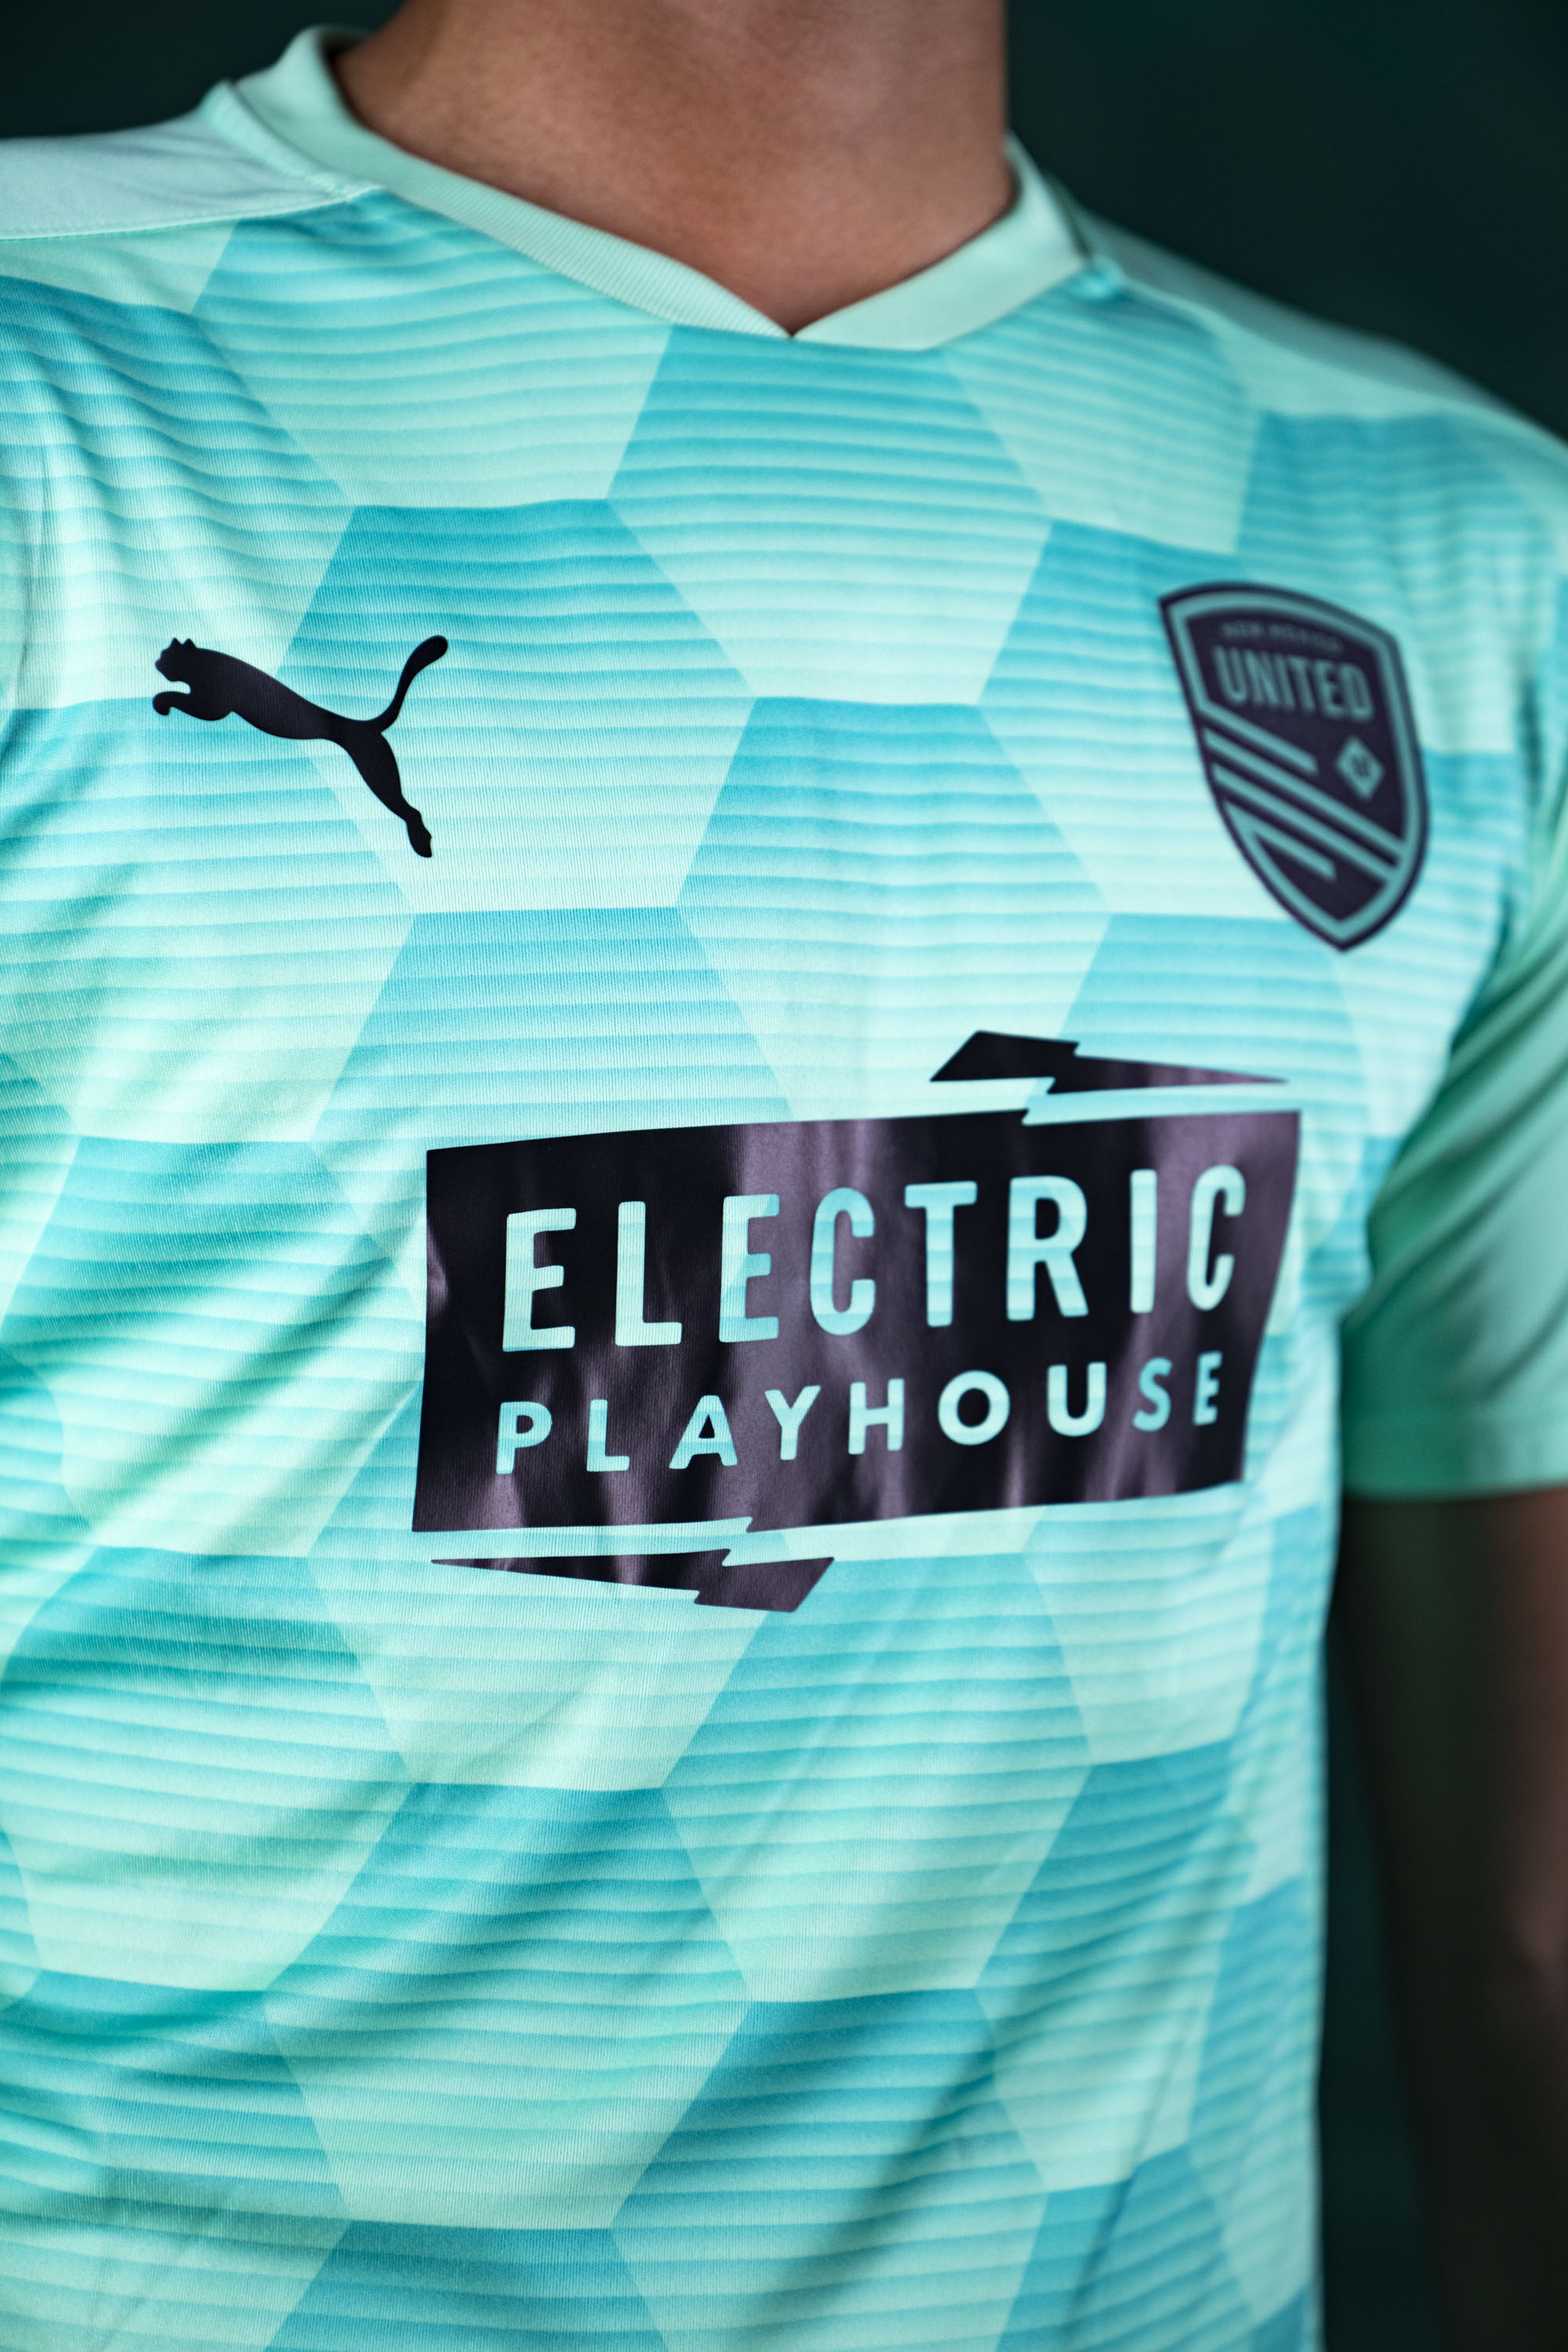 New Mexico United Puma 2021 Electric Playhouse Unisex Third Jersey